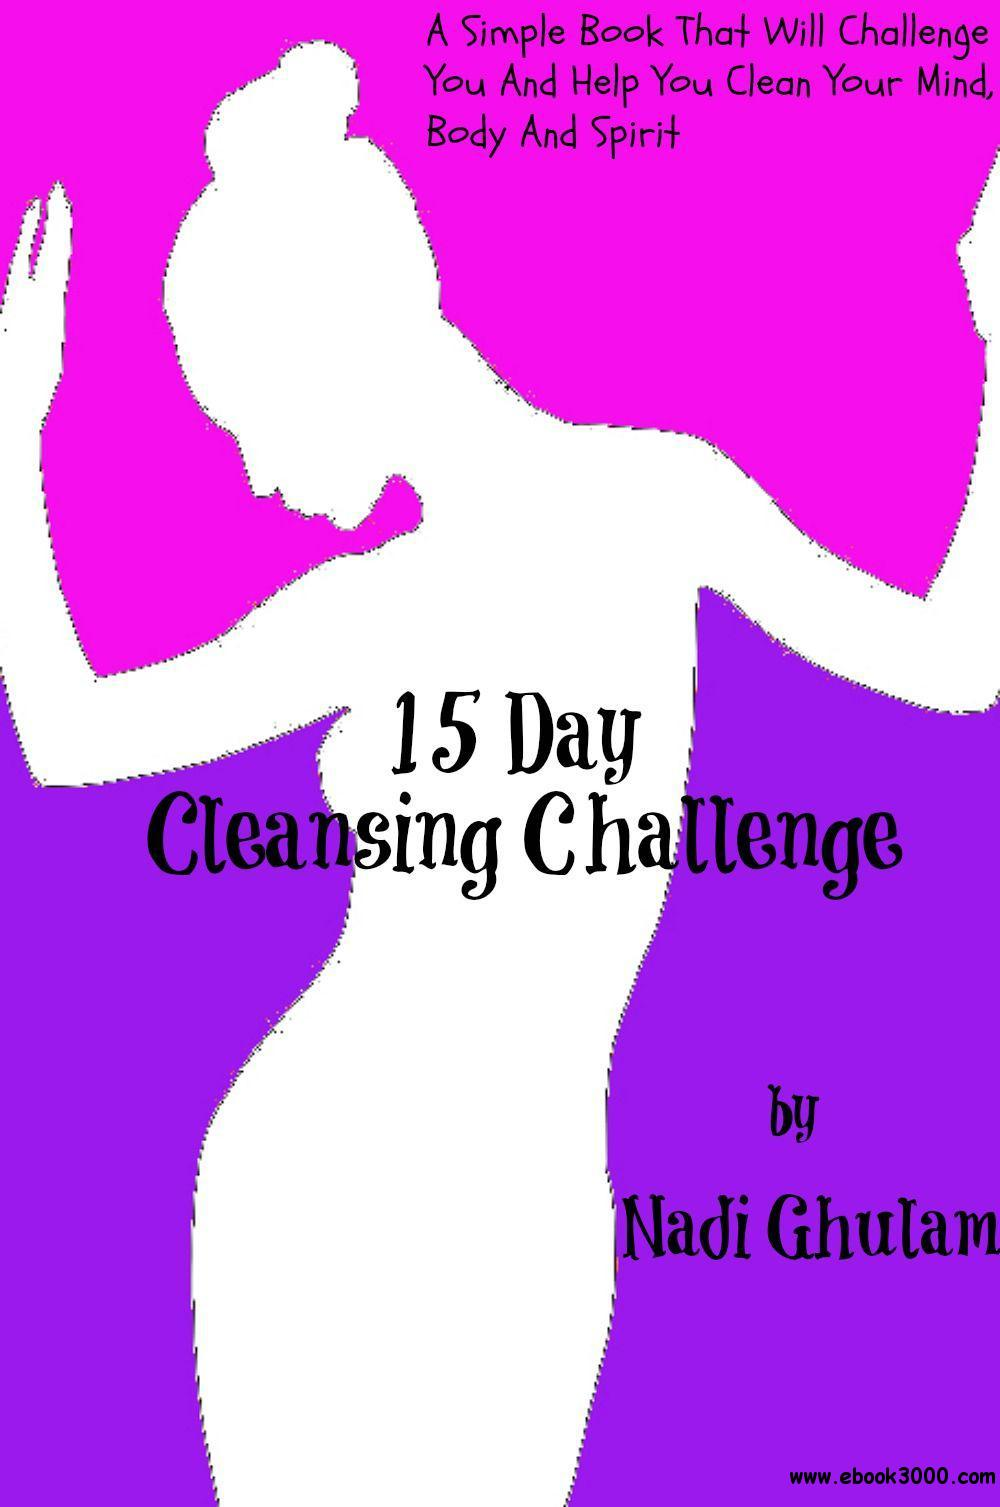 15 Day Cleansing Challenge (Look Good Naked) free download